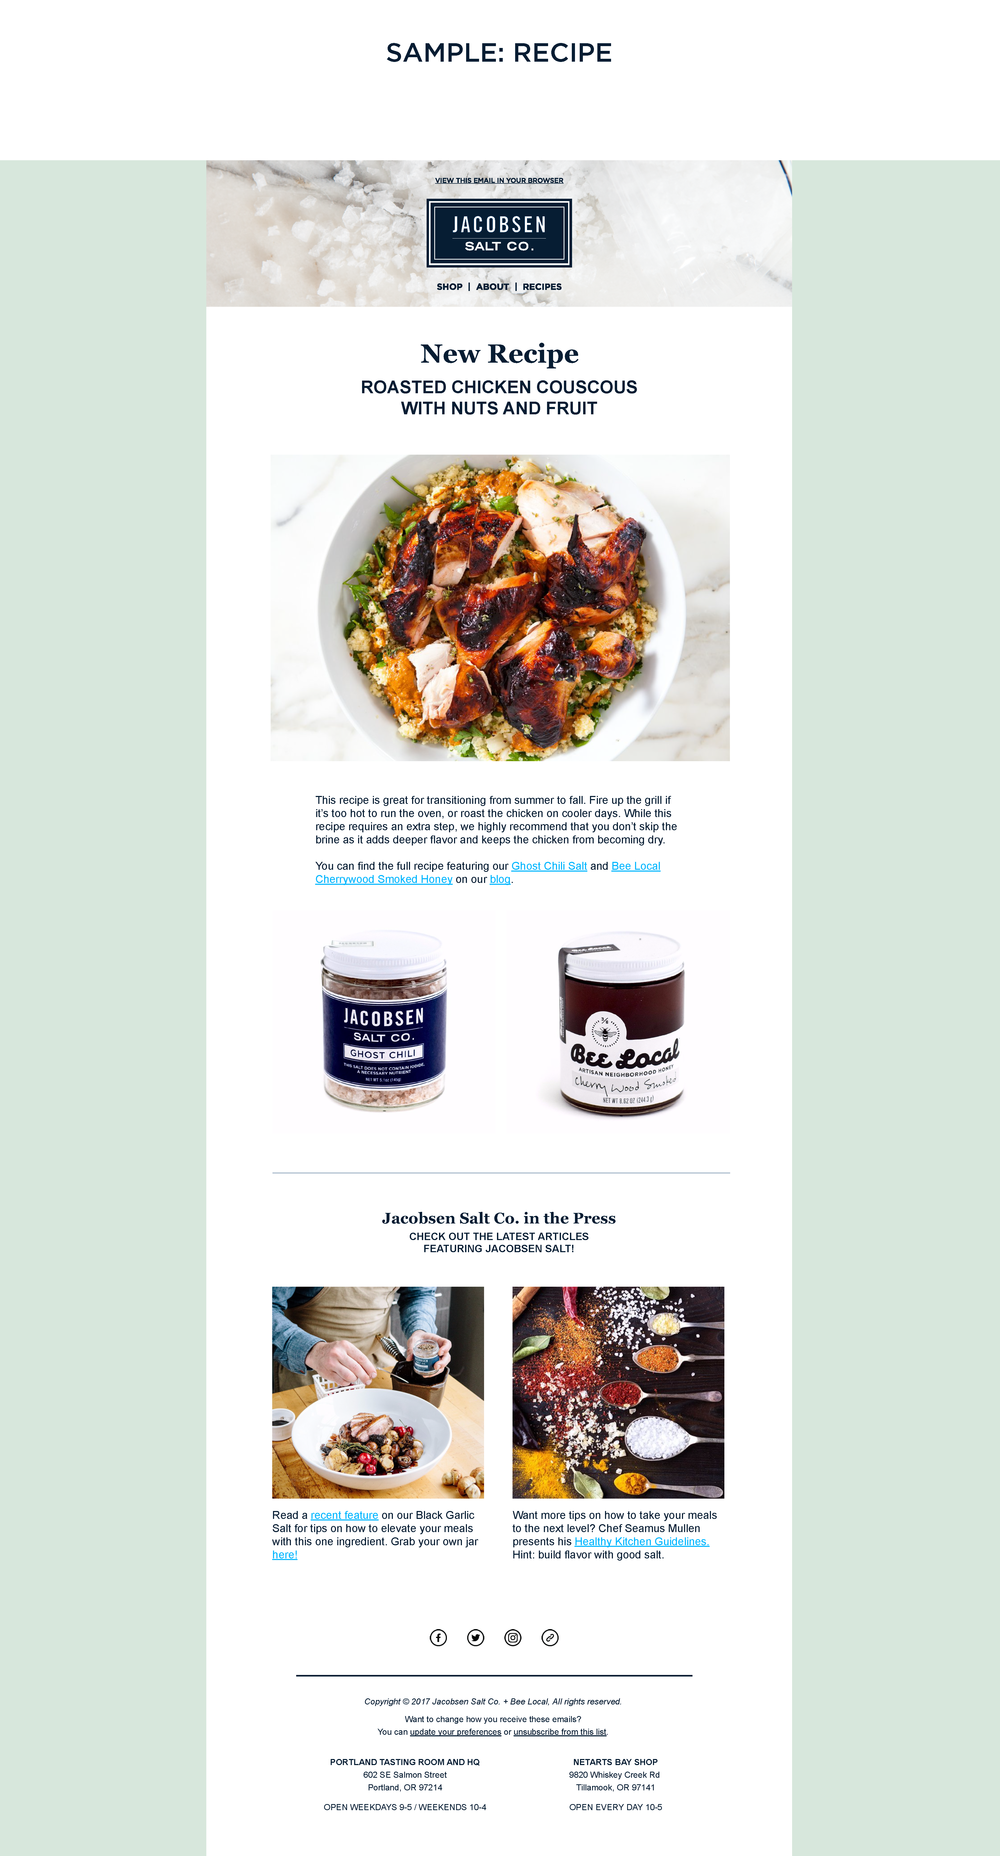 Email newsletter templates_Page_4.png